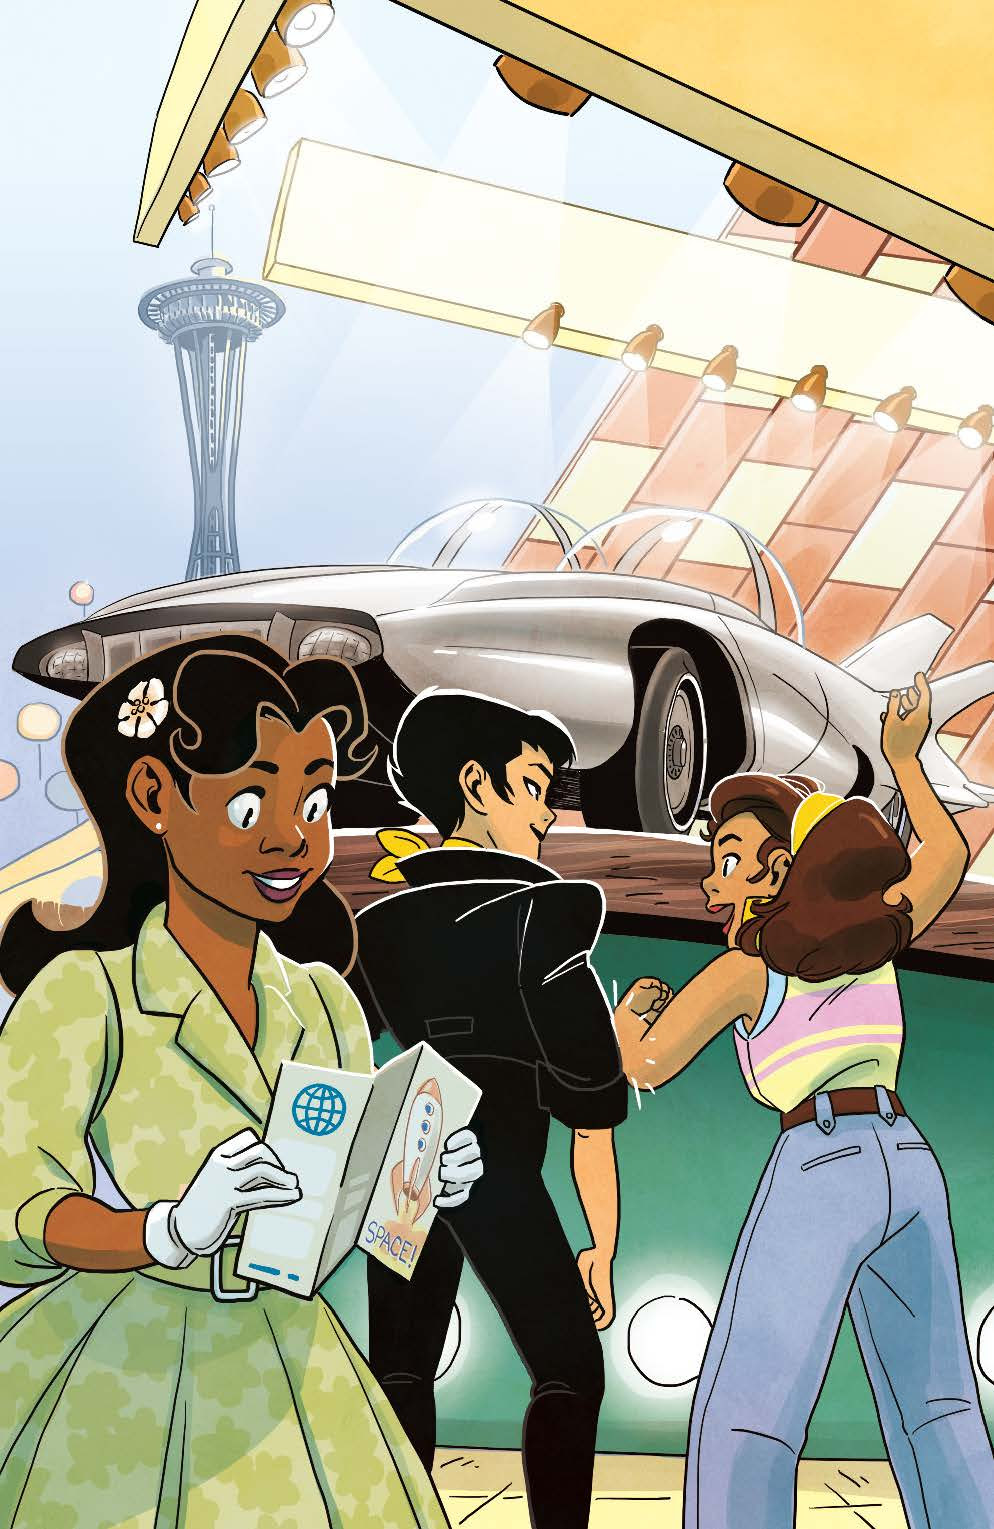 Goldie Vance #1 ECCC Exclusive